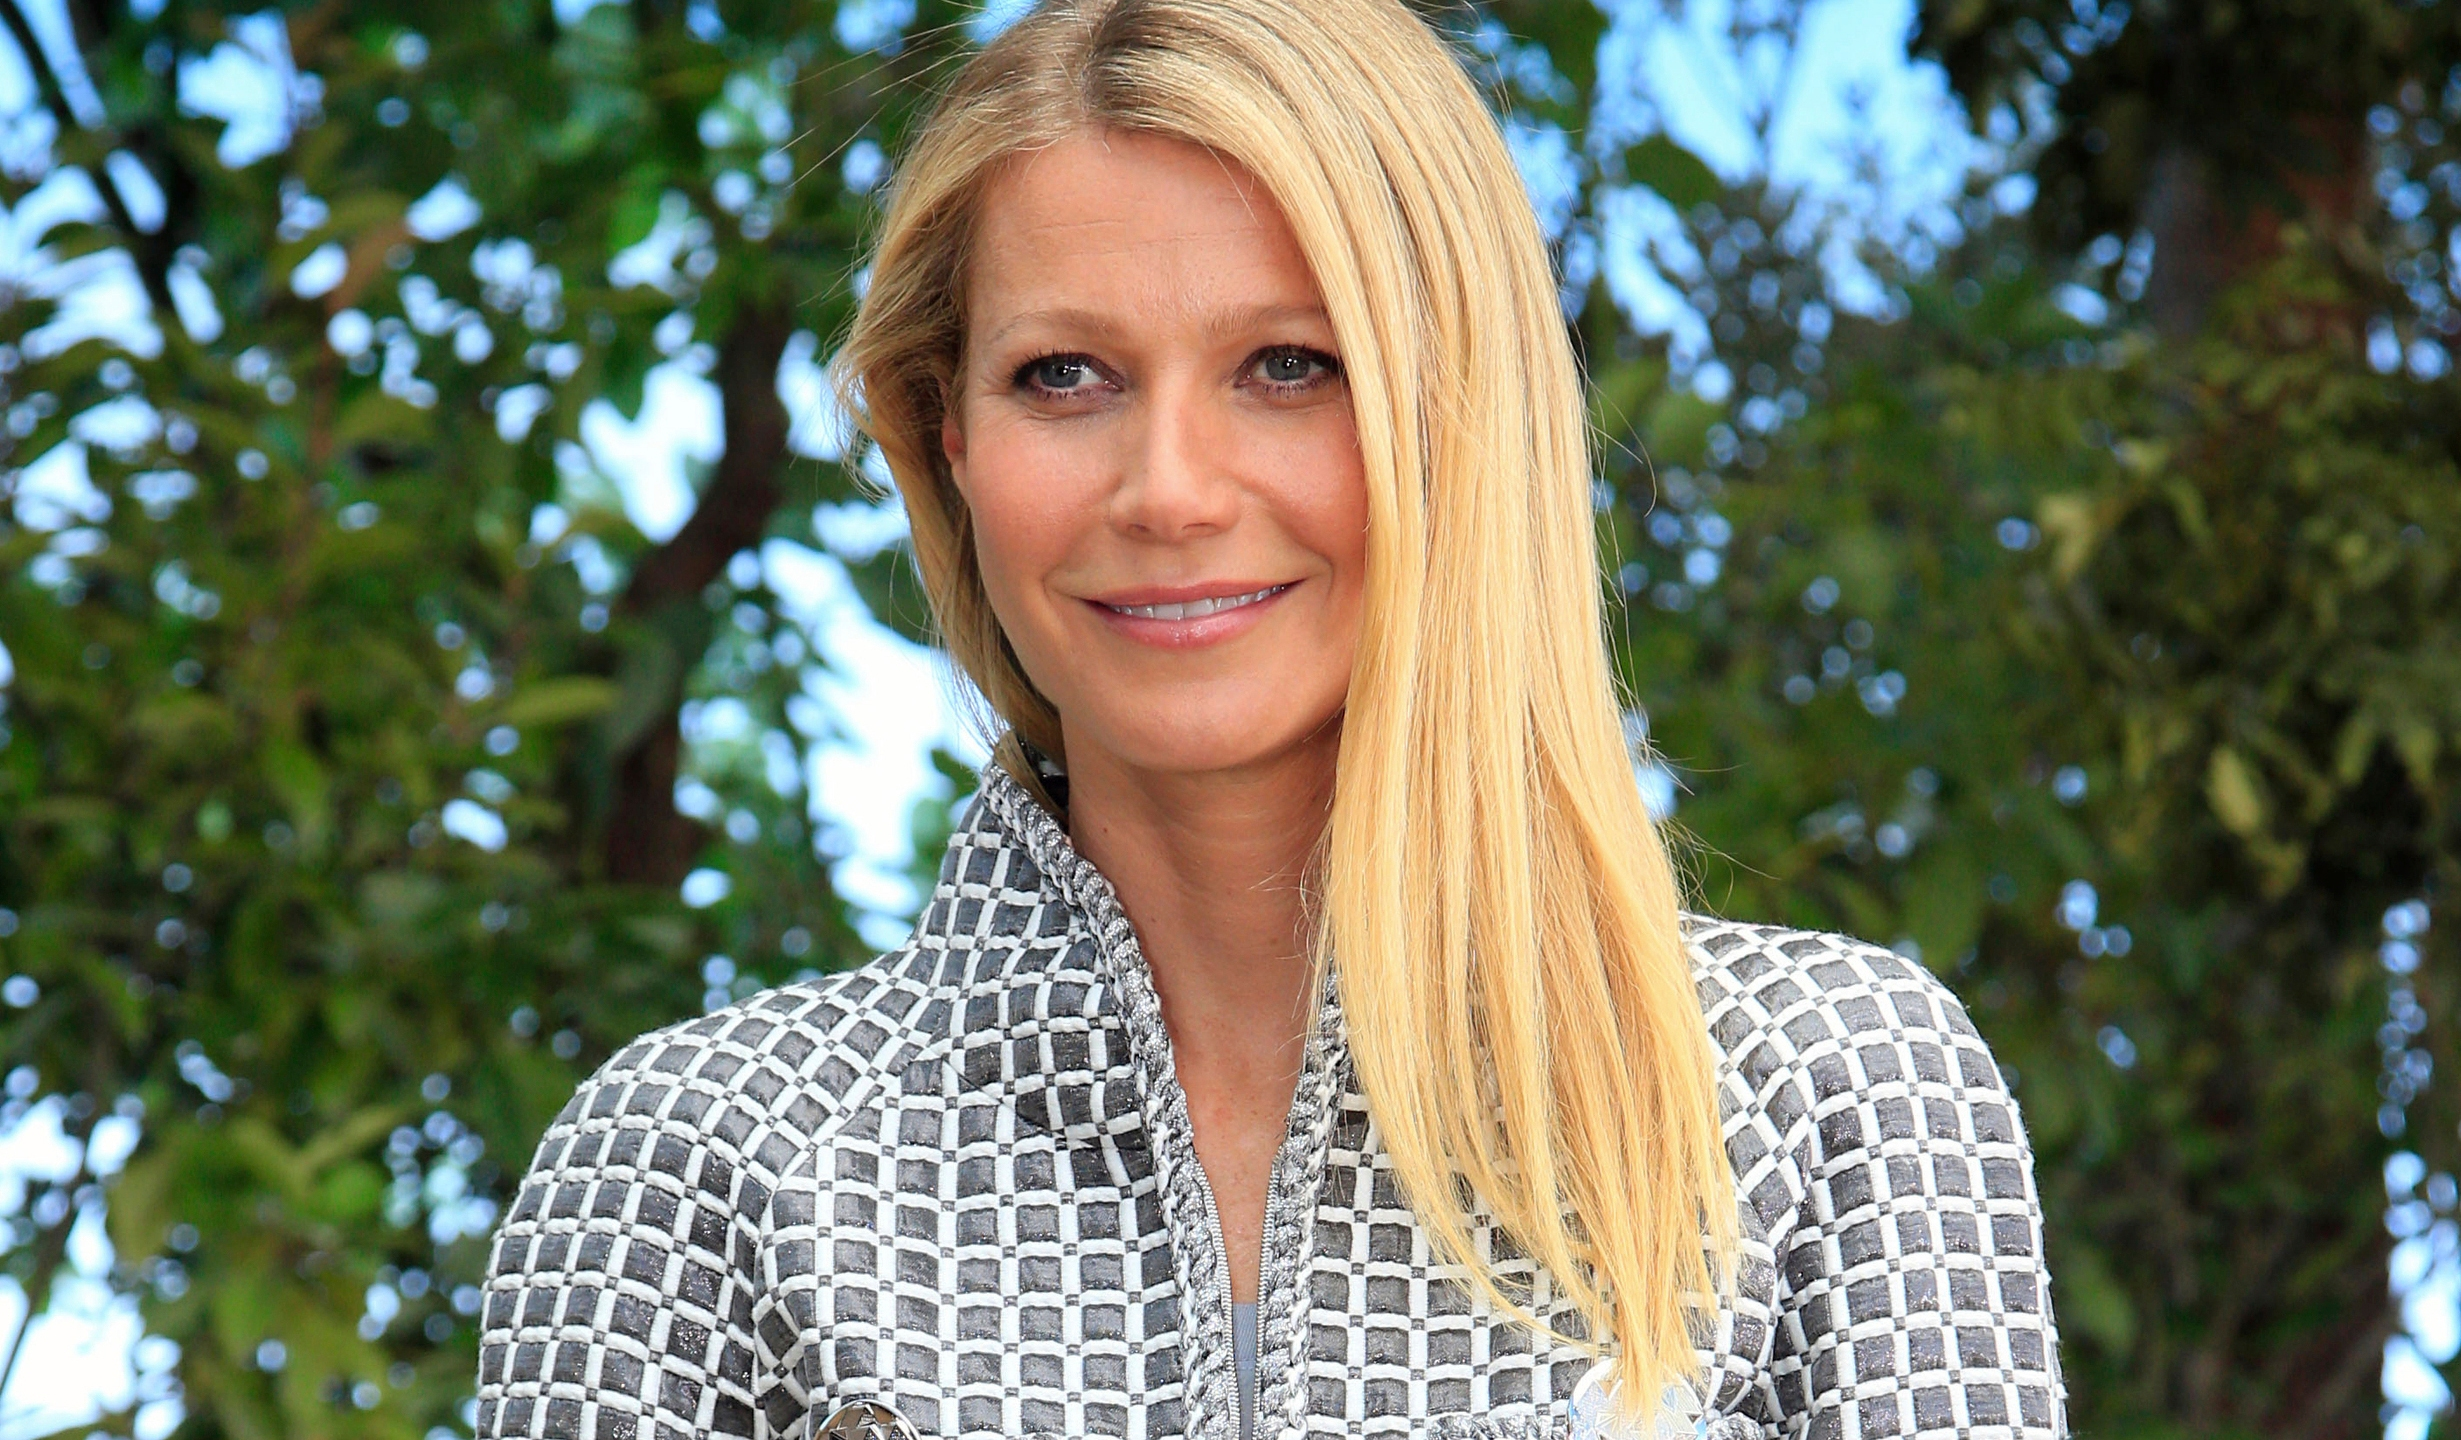 Gwyneth_Paltrow_Skiing_Lawsuit_37661-159532.jpg03335774